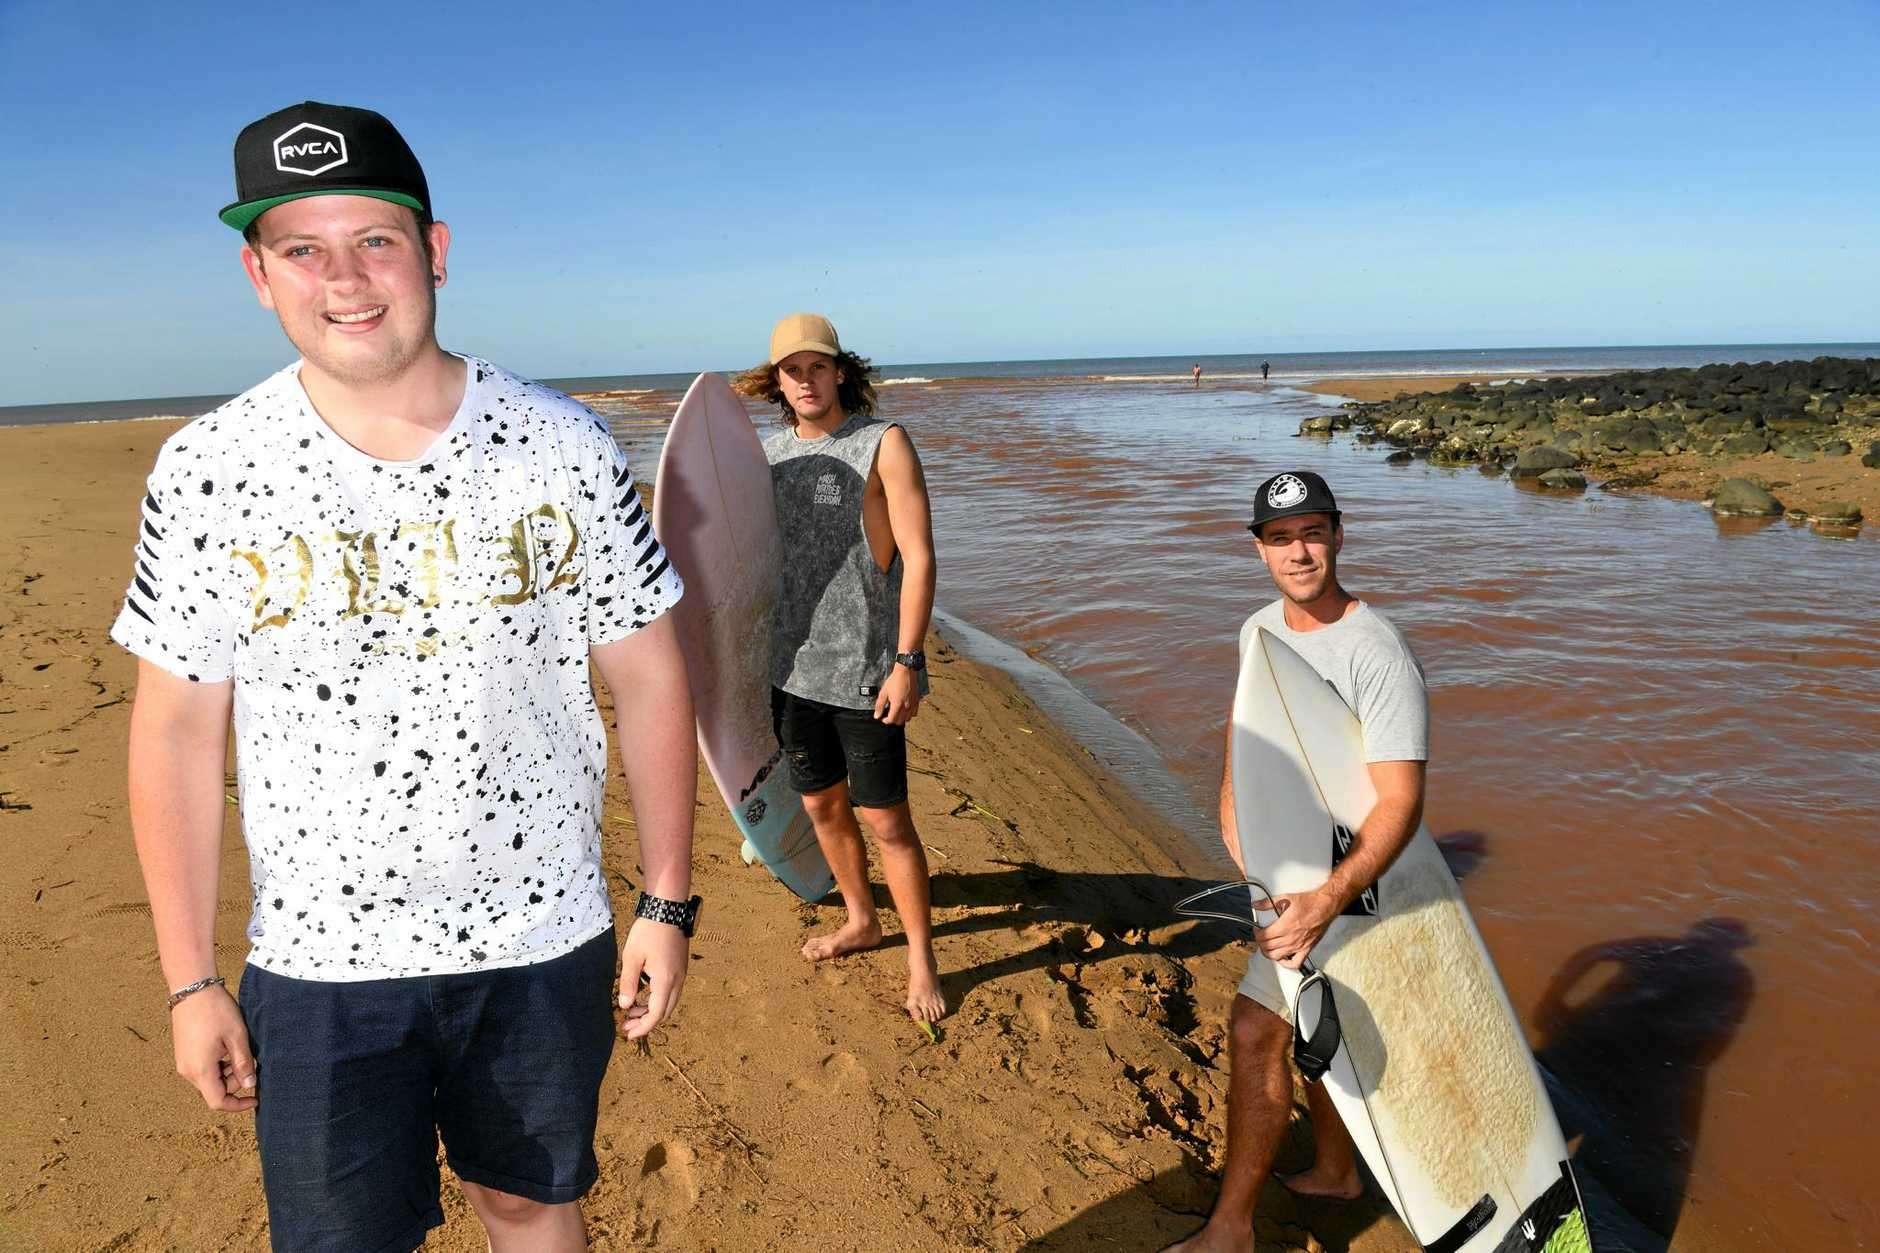 THANKYOU: Hayden Peebles was rescued by Boaz Bragg and Ryan Weekes at Kellys Beach yesterday afternoon.